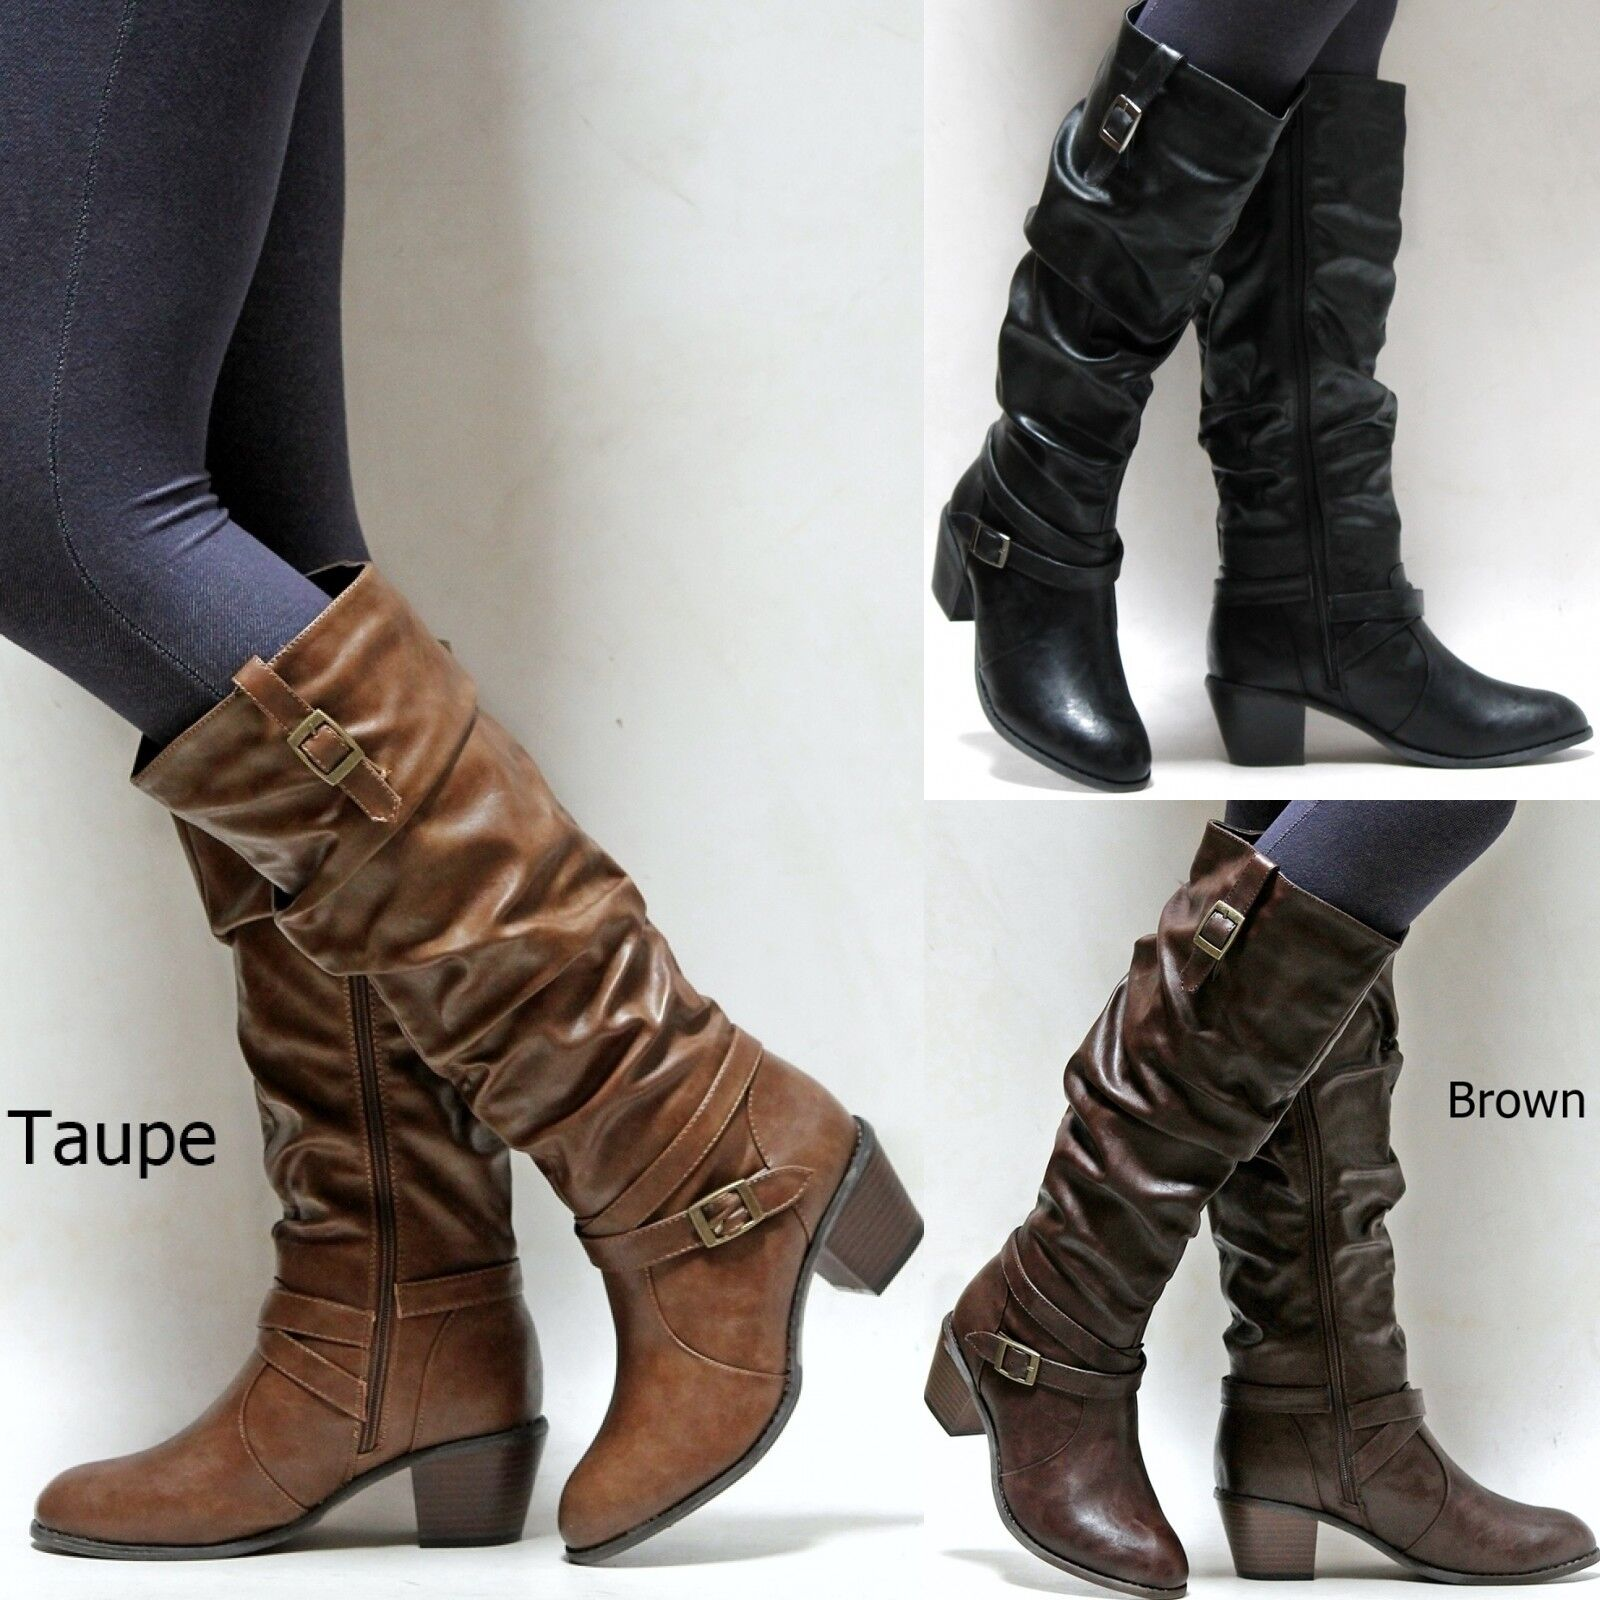 New Women ASg1 Black Tan Brown Taupe Knee High Western Low Heel Riding Boots